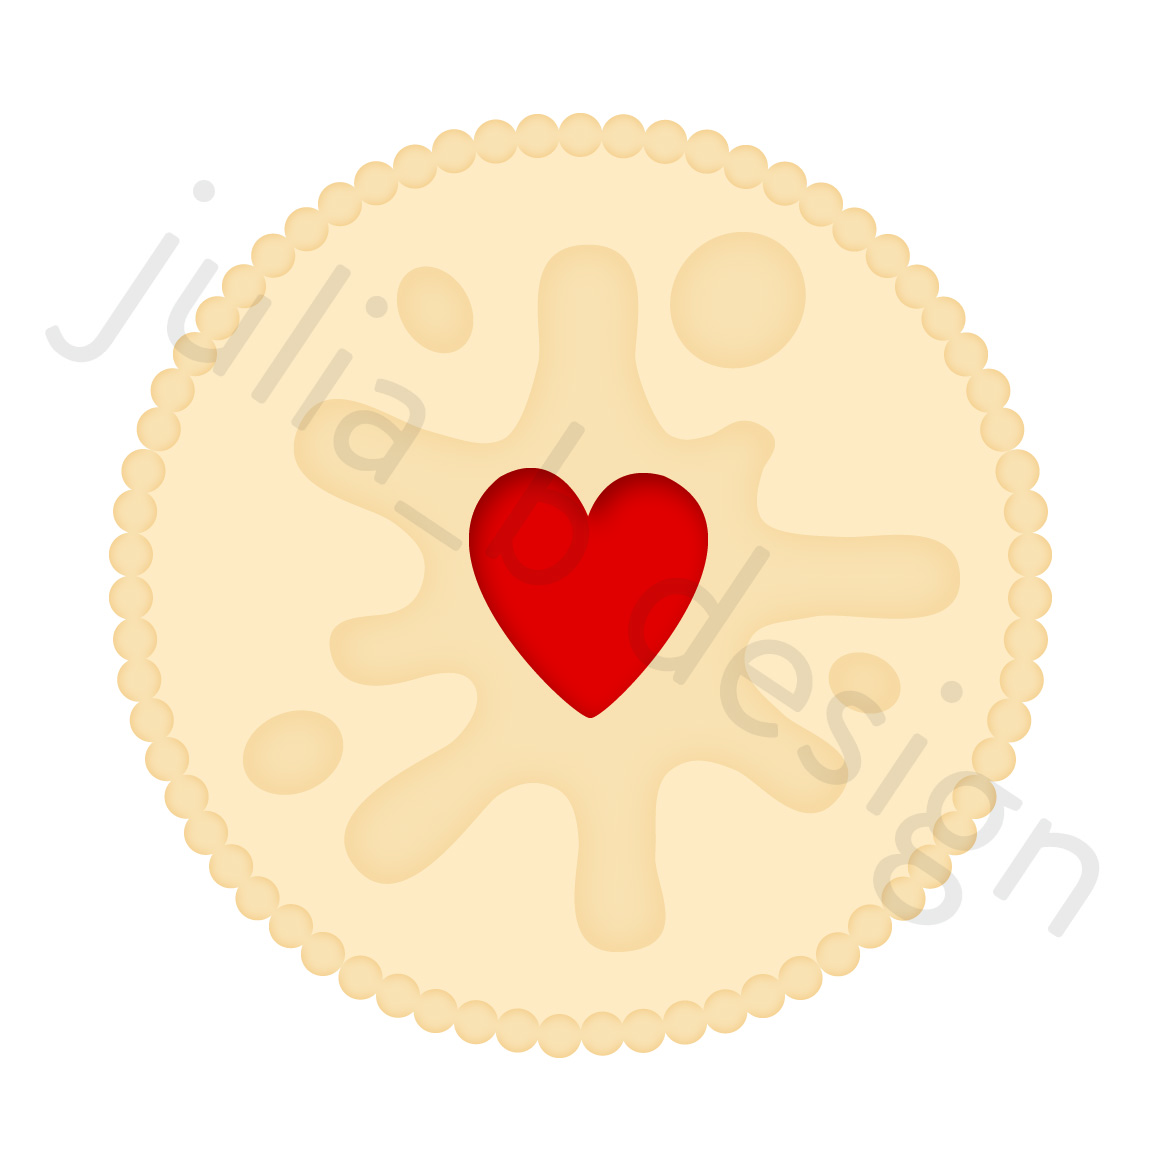 Biscuit clipart jammy Dodger There's by Julia jammy